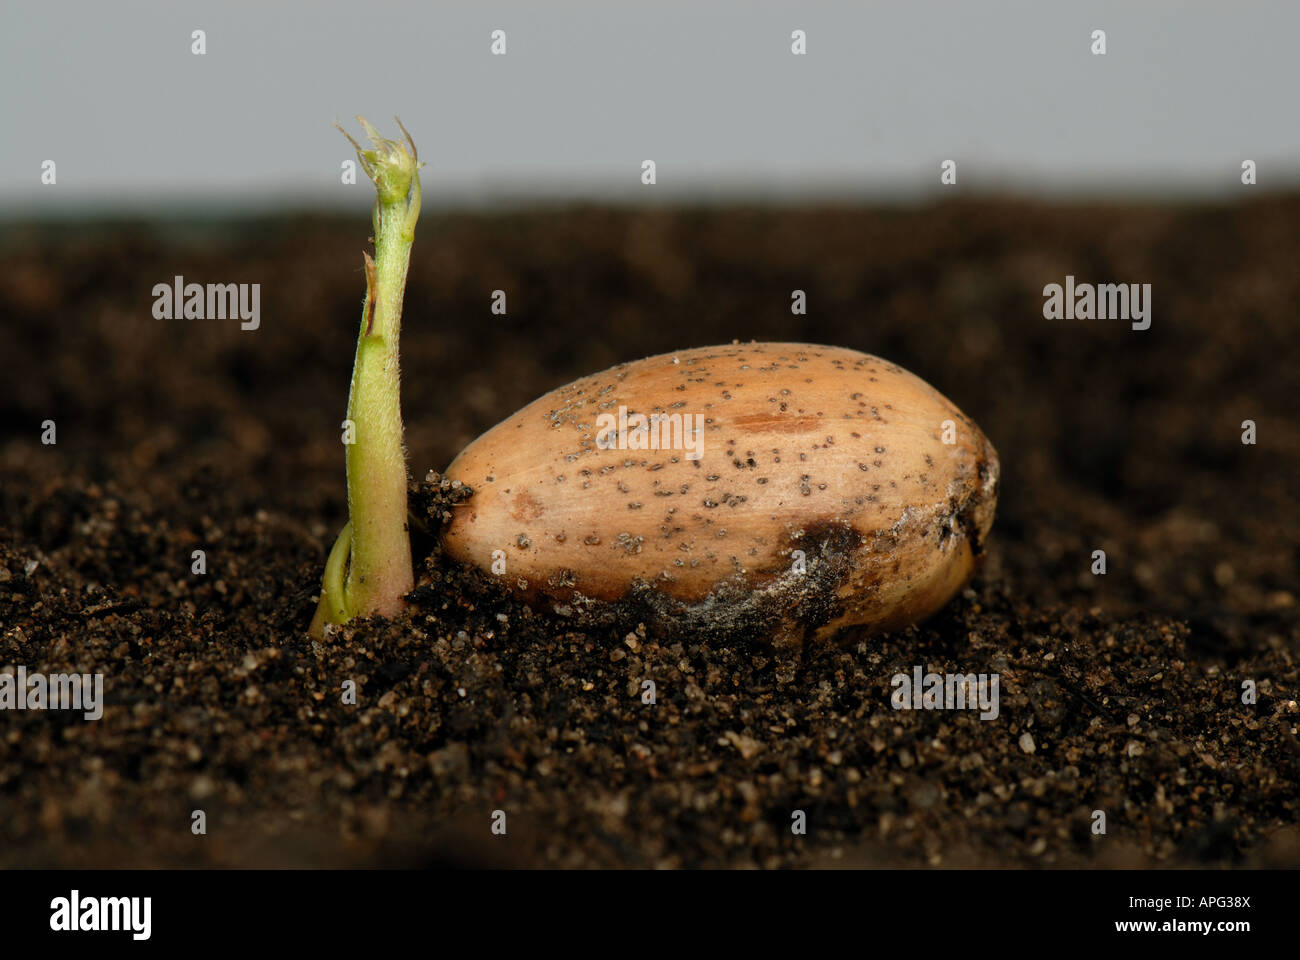 An oak Quercus robur acorn lying on the soil germinating aerial shoot beginning to develop - Stock Image